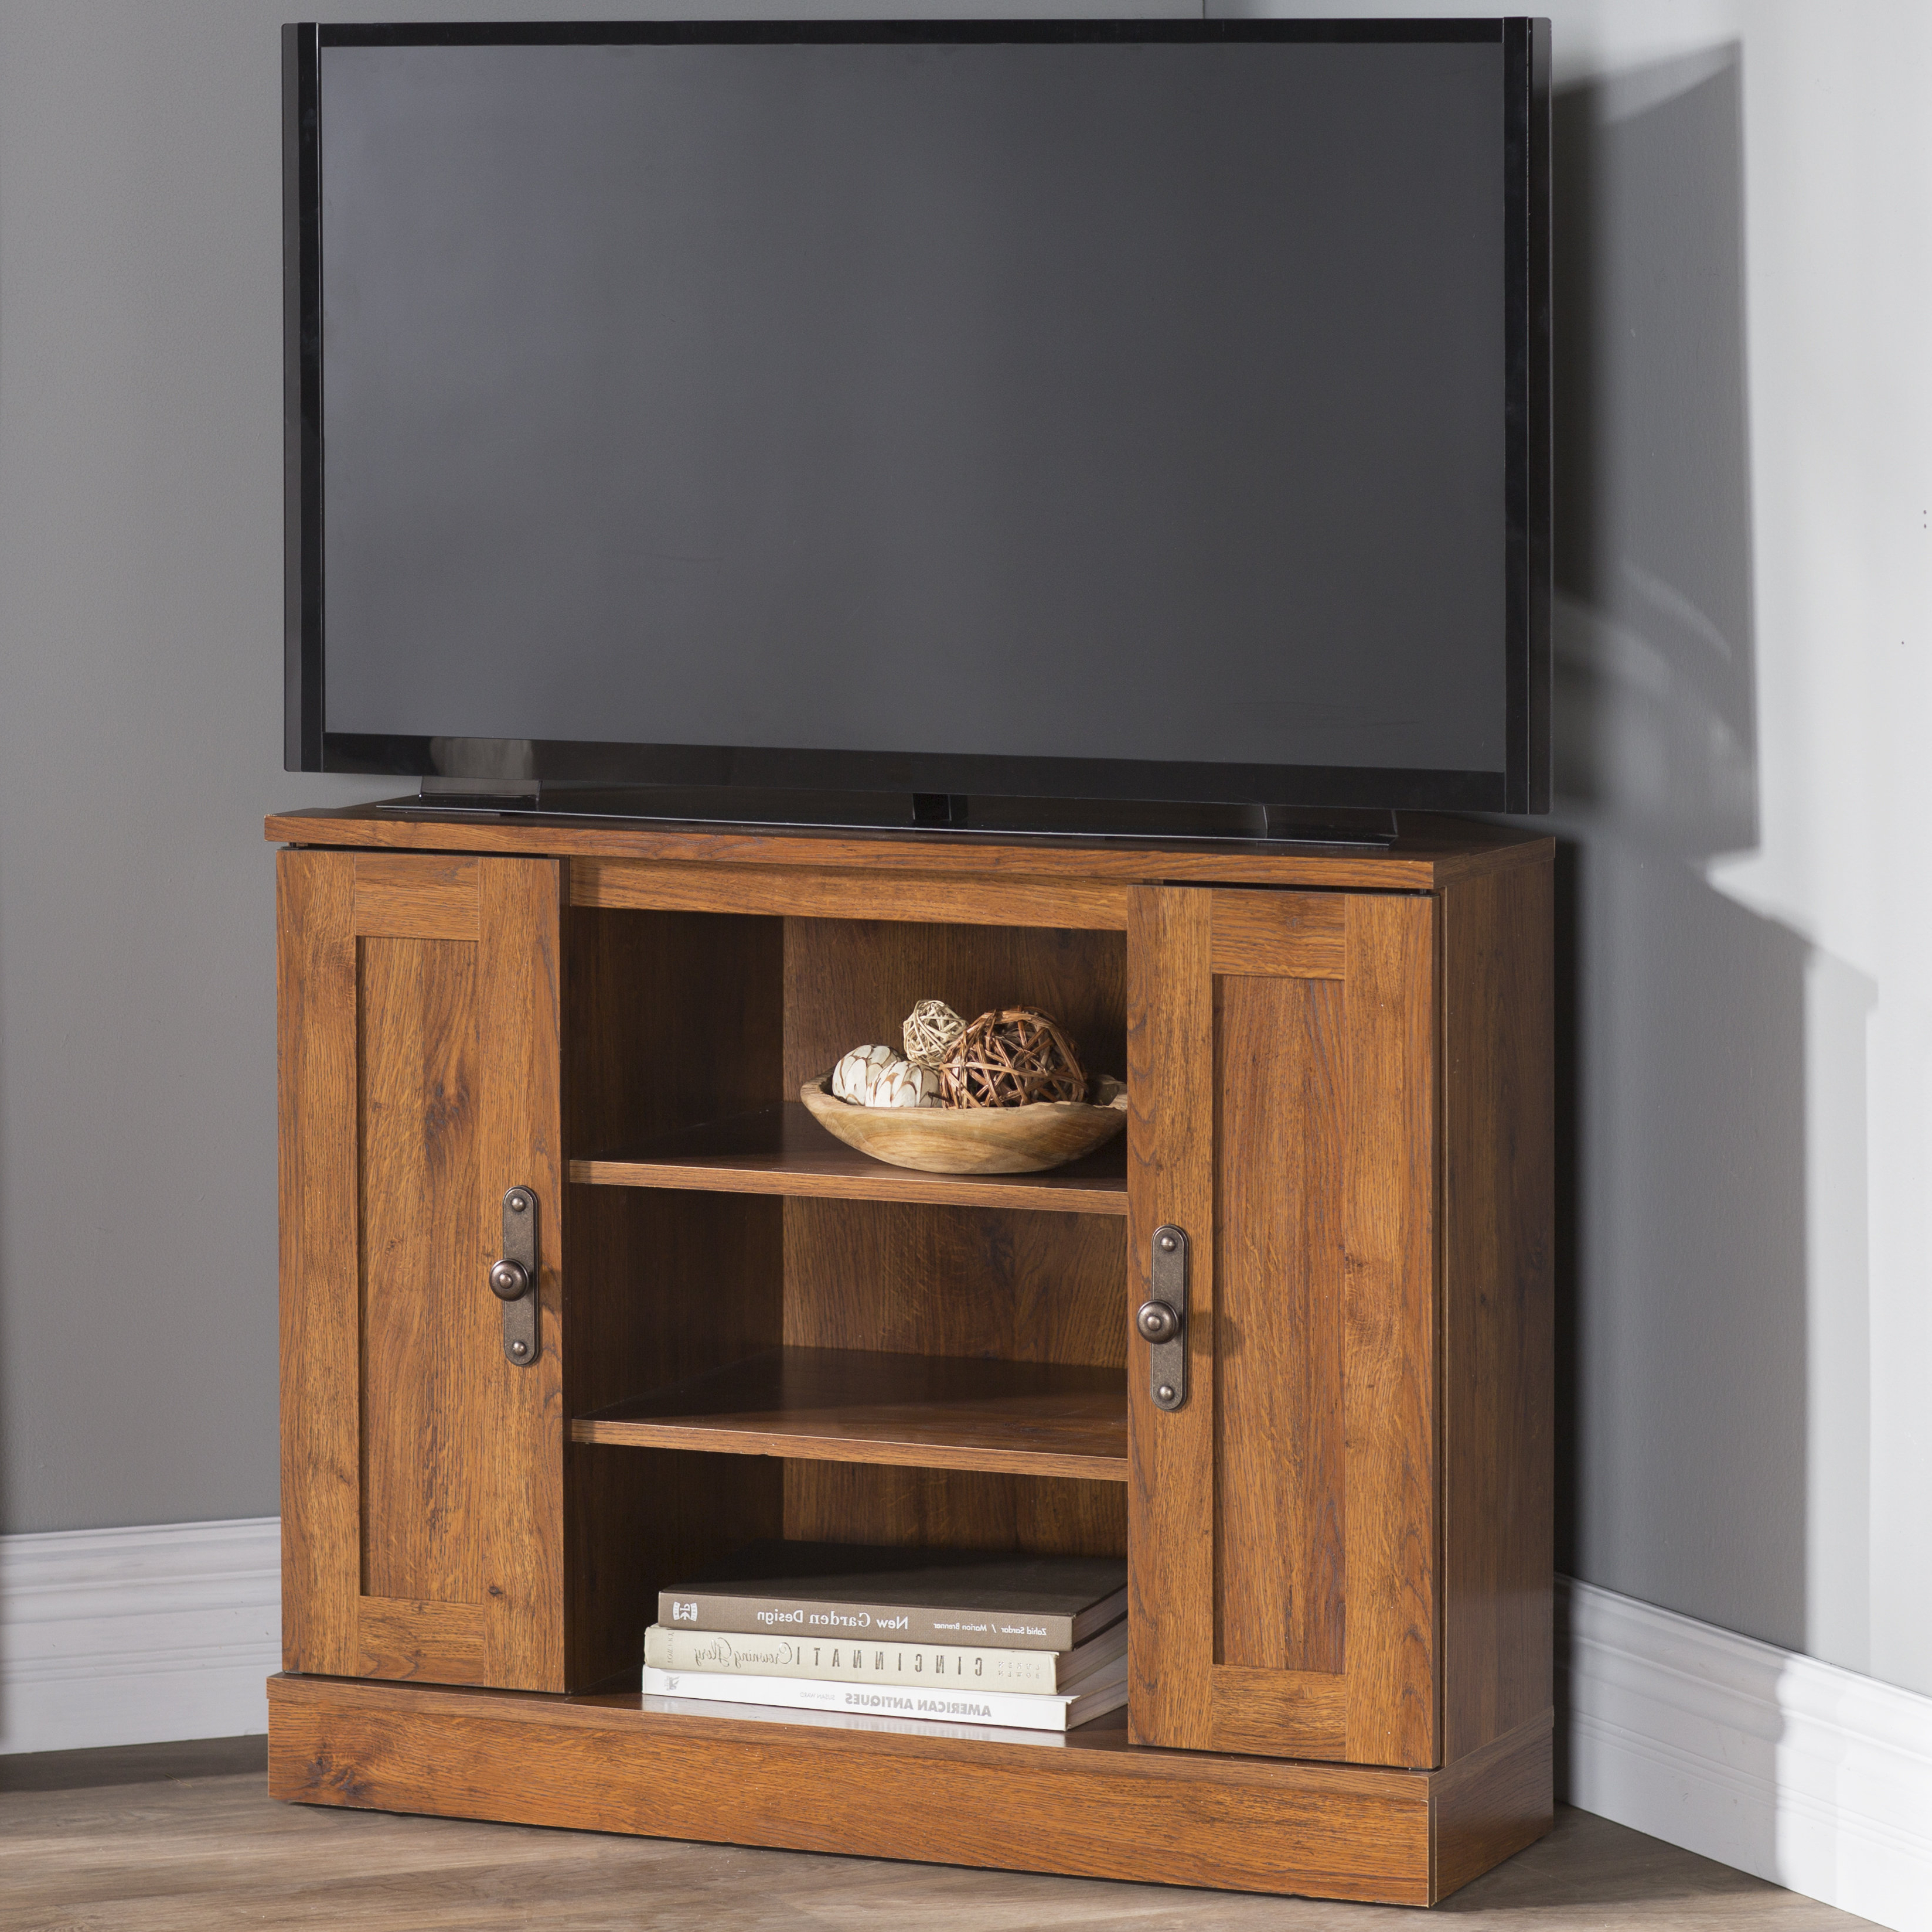 Best And Newest Corner Tv Stands You'll Love In Tv Stands For Corners (Gallery 3 of 20)